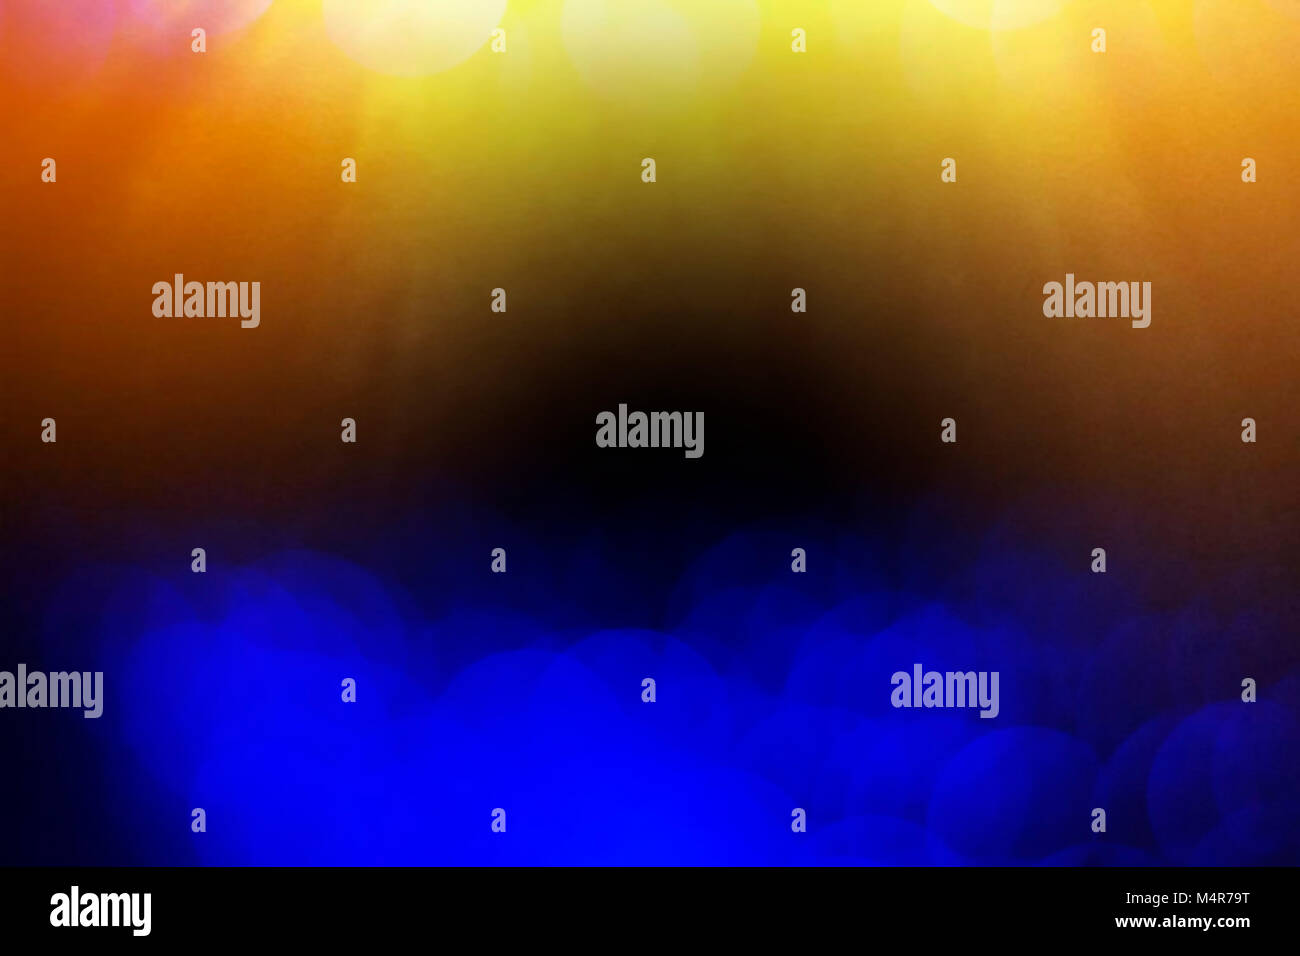 Abstract colored background in a dark tonality. Blurred background. Element of design. Book cover. Social networks. - Stock Image